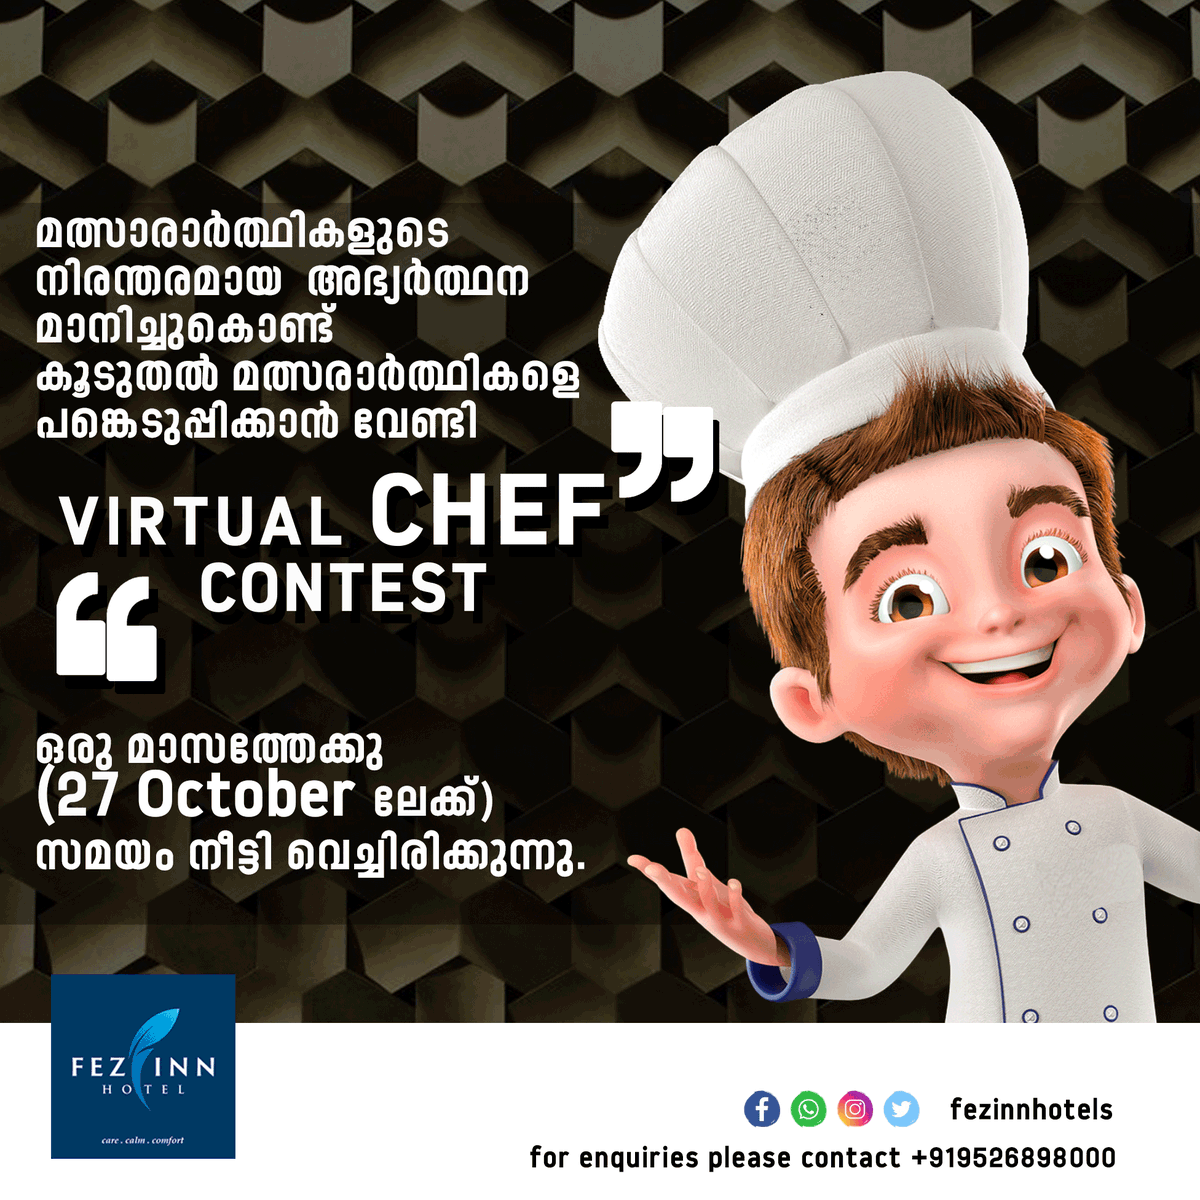 """""""Opportunity extended to accommodate participation from more number of interested candidates. This is your last chance to become a Hotel Master Chef virtually. So, hurry and register now""""  #chefcontest #ContestAlert  #cheflife  #kitchen https://t.co/2eOAlznRoF"""